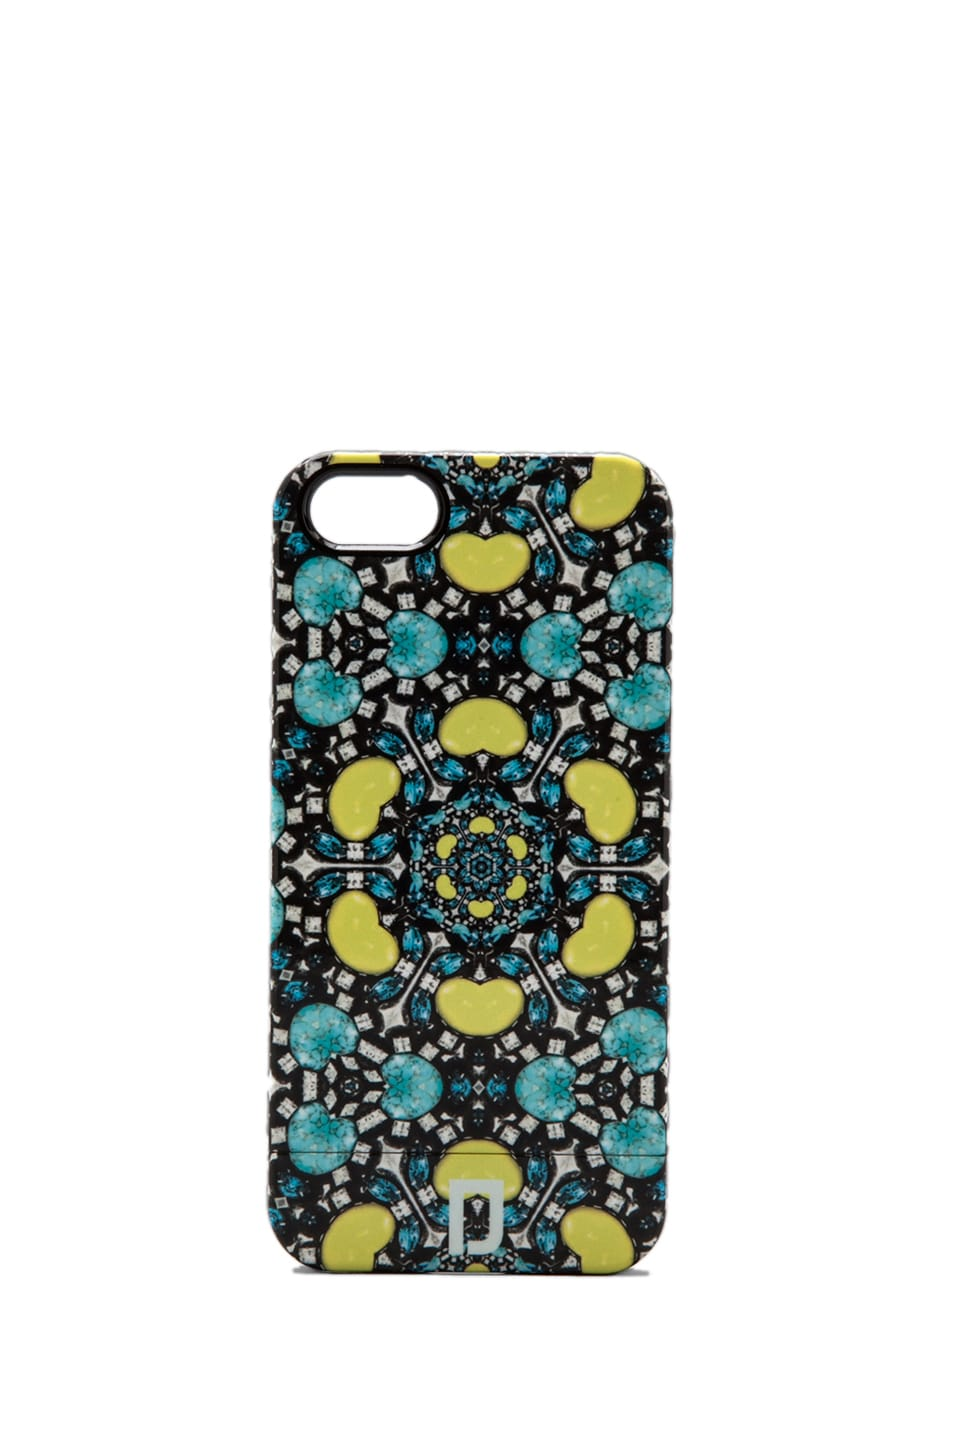 DANNIJO iPhone 5 Case in Perra Yellow